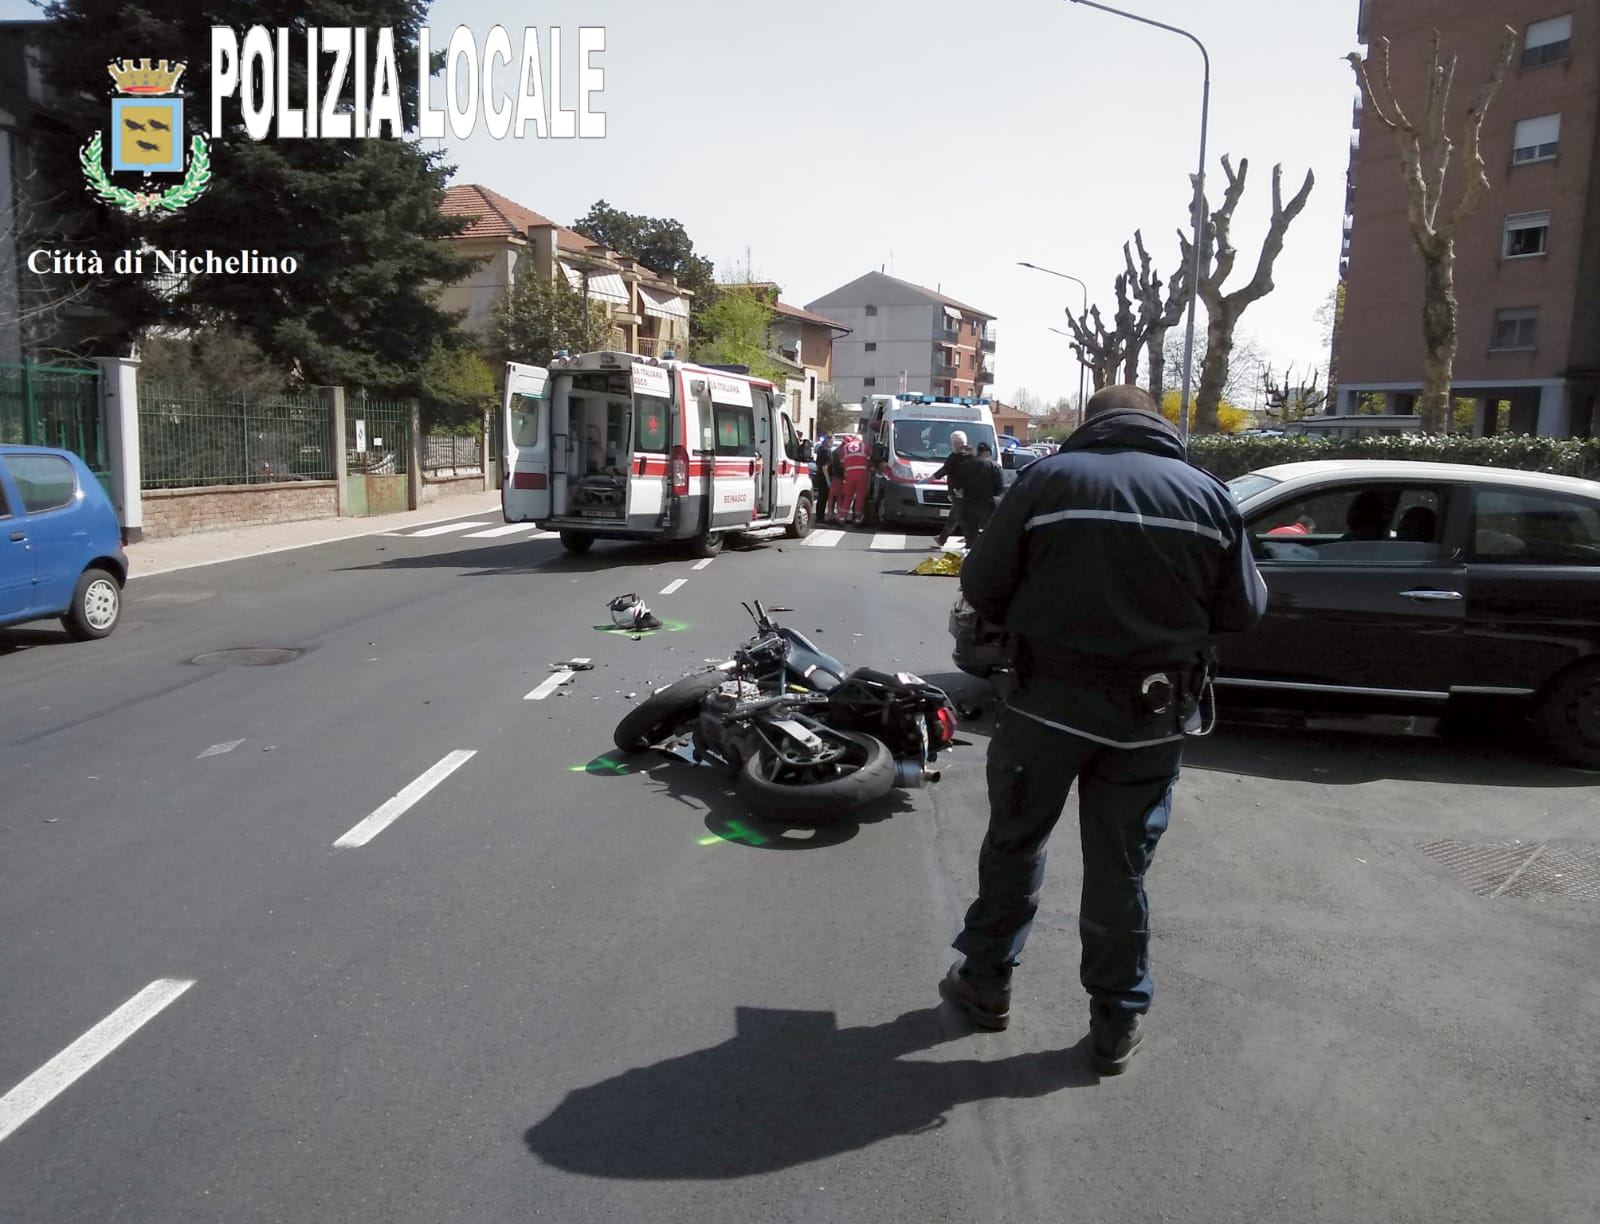 NICHELINO – Grave incidente in via Cacciatori